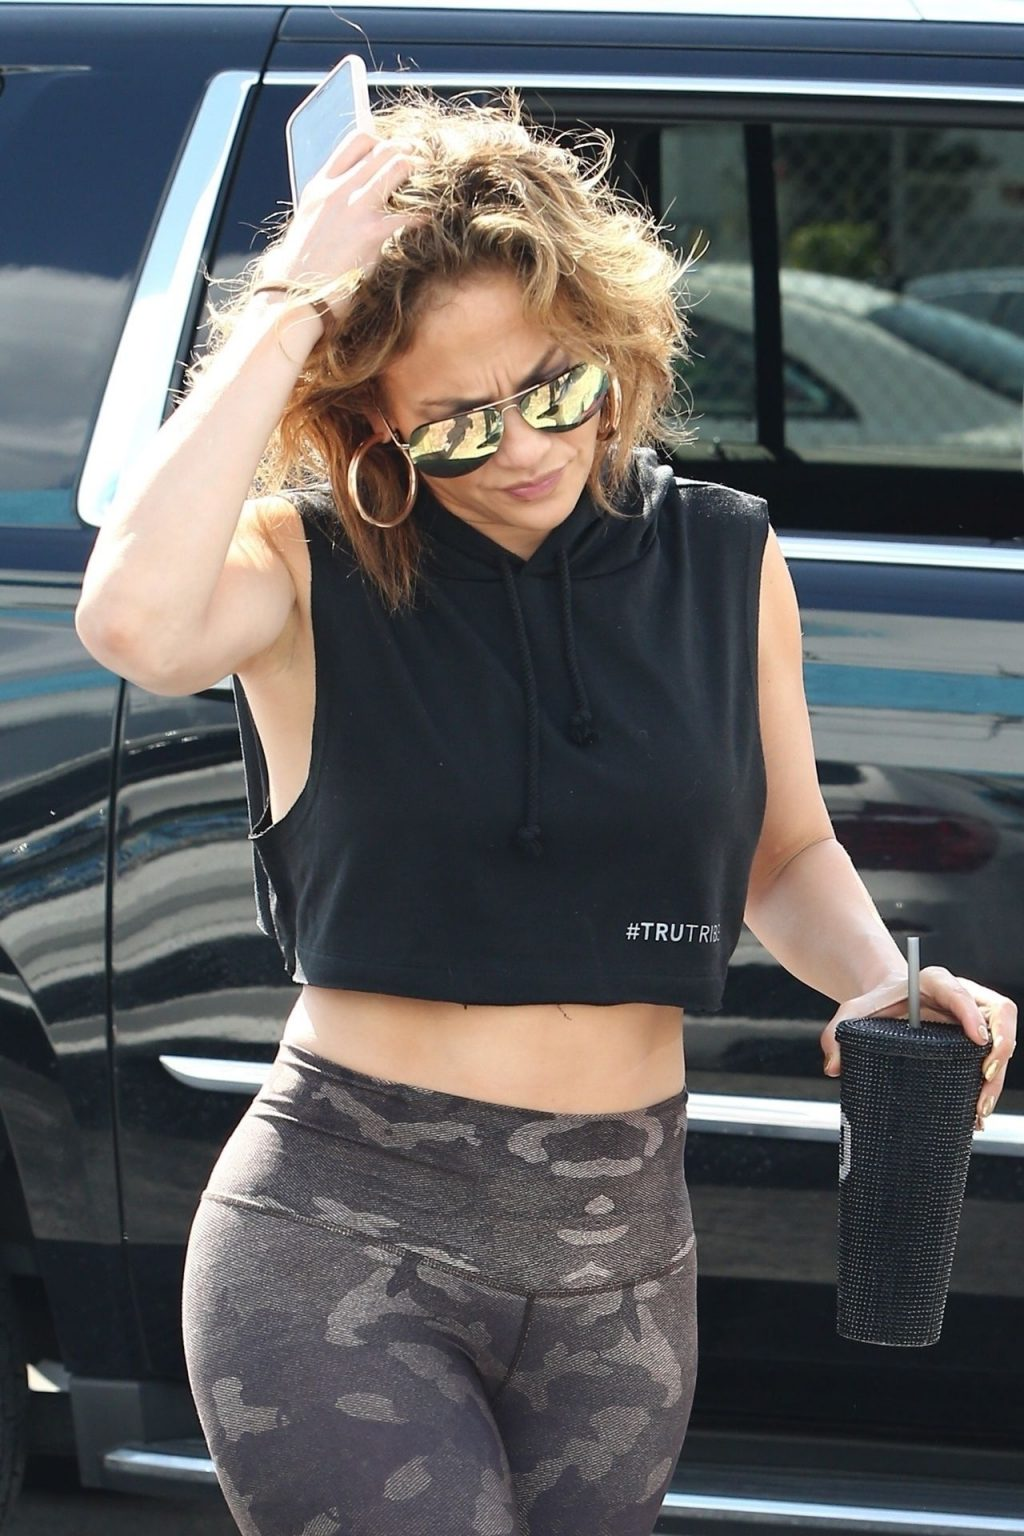 Jennifer Lopez Sexy The Fappening Blog 16 1024x1536 - Jennifer Lopez Shows That Rock Hard Abs Don't Just Happen as She Dutifully Hits the Gym in Miami (48 Photos)